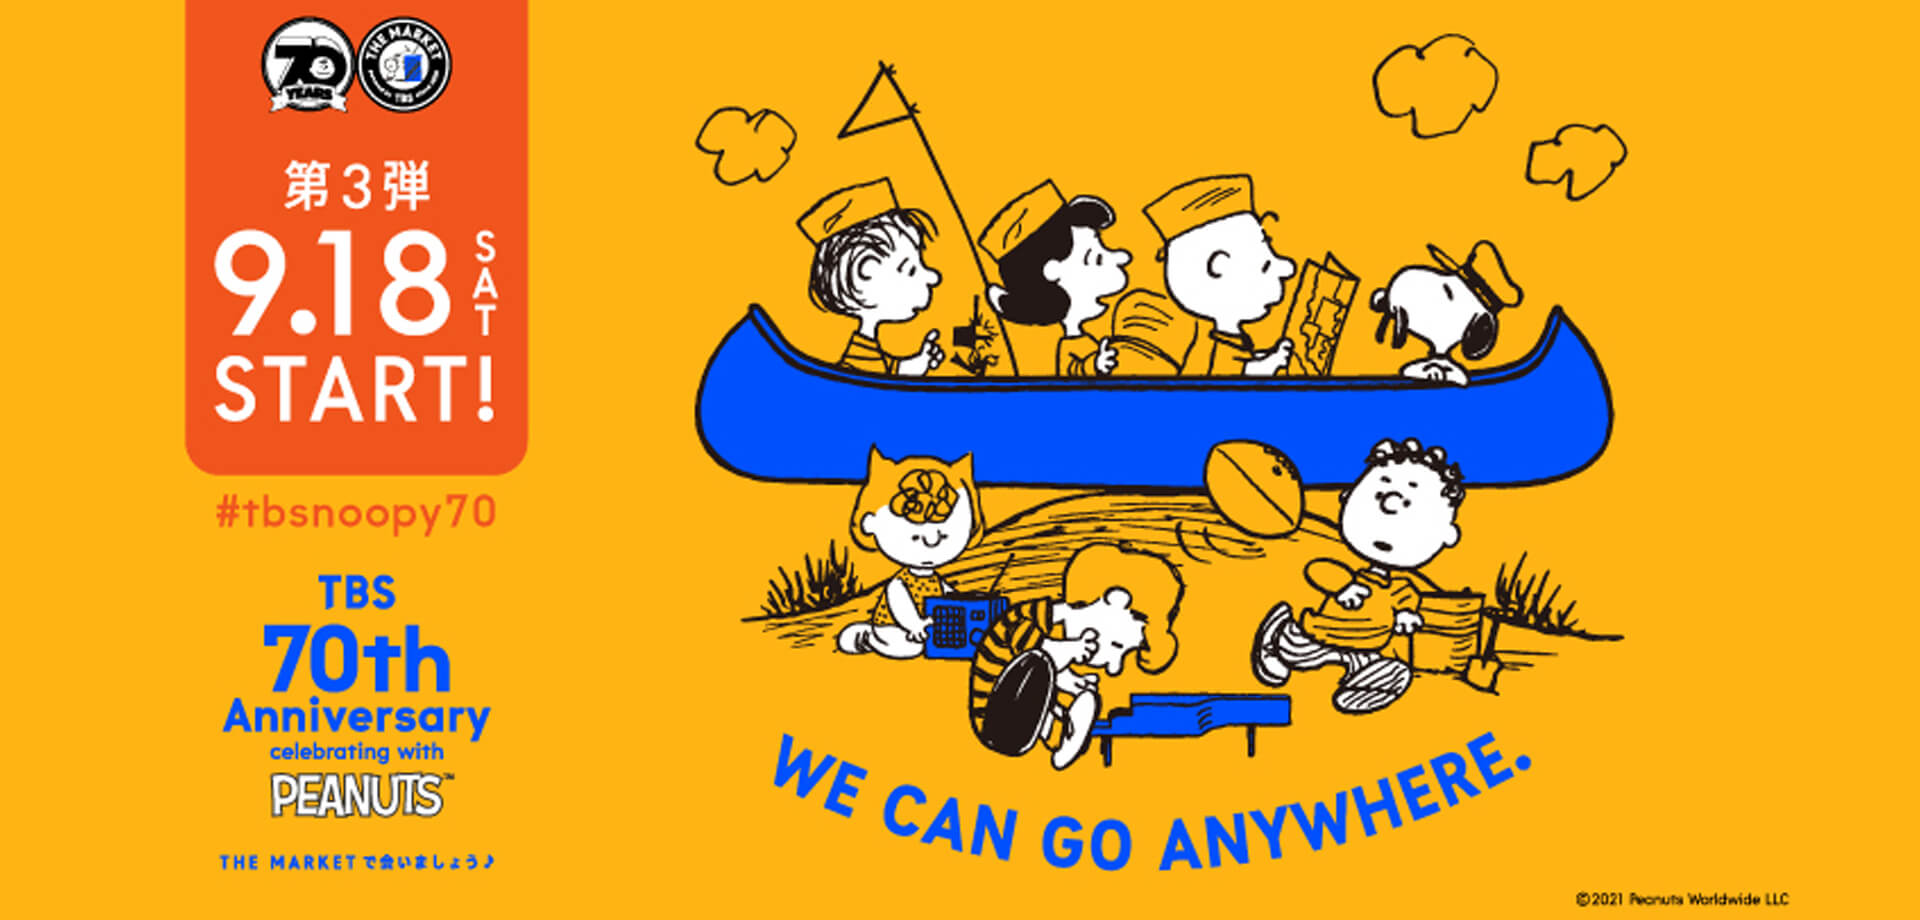 THE MARKET powered by TBS「TBS 70th Anniversary celebrating with PEANUTS」